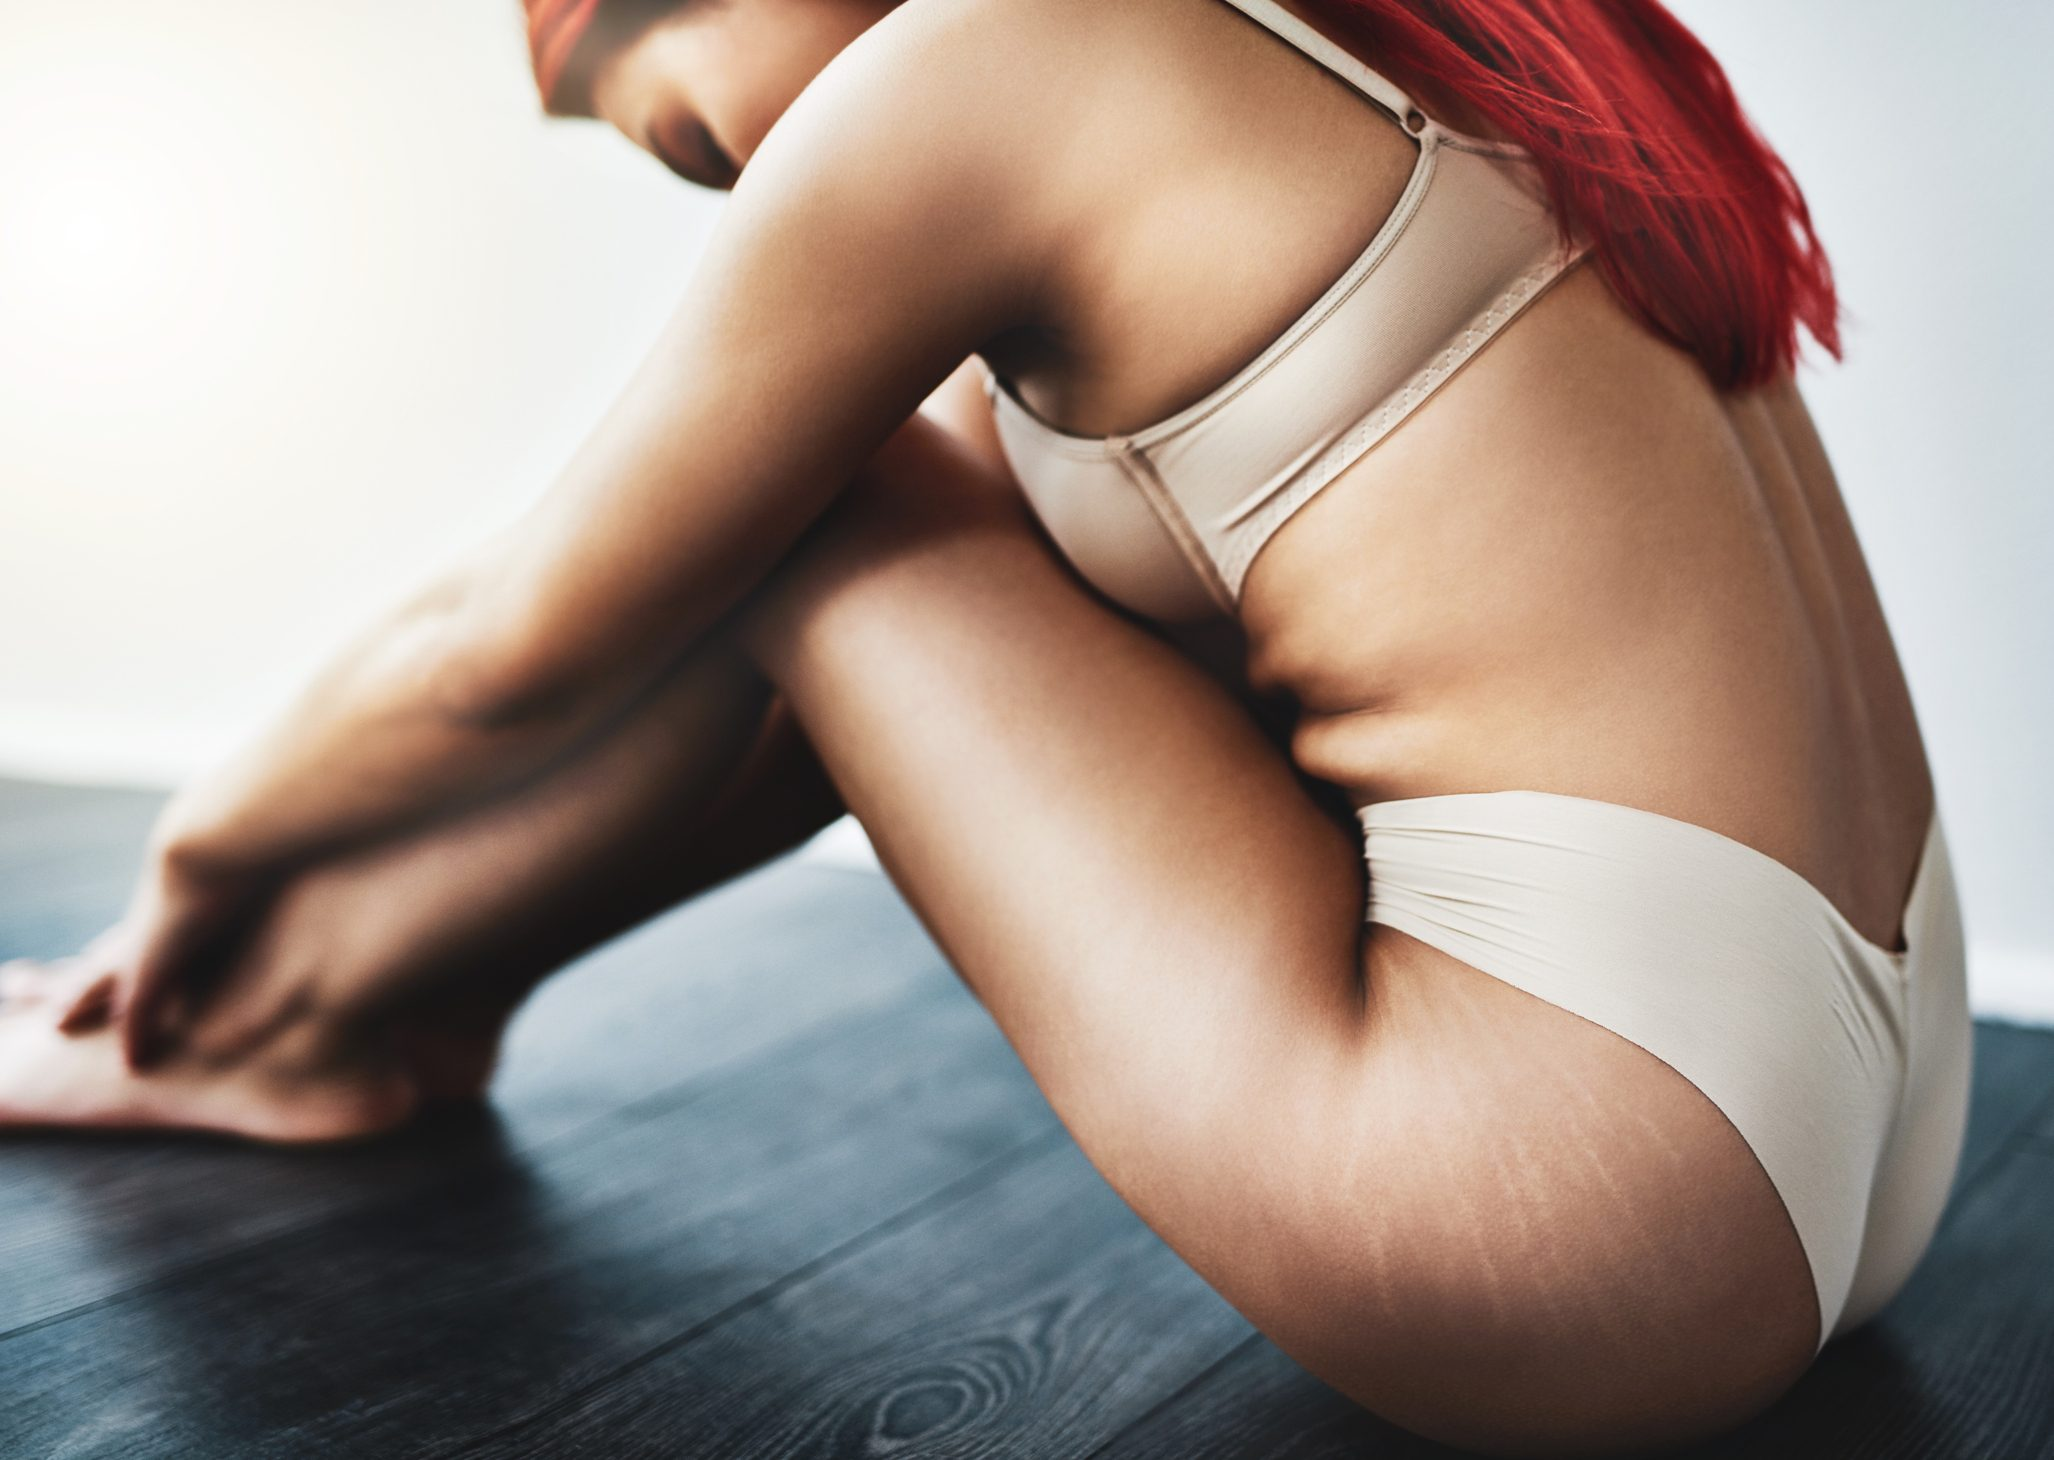 cropped shot of woman sitting down with stretch marks